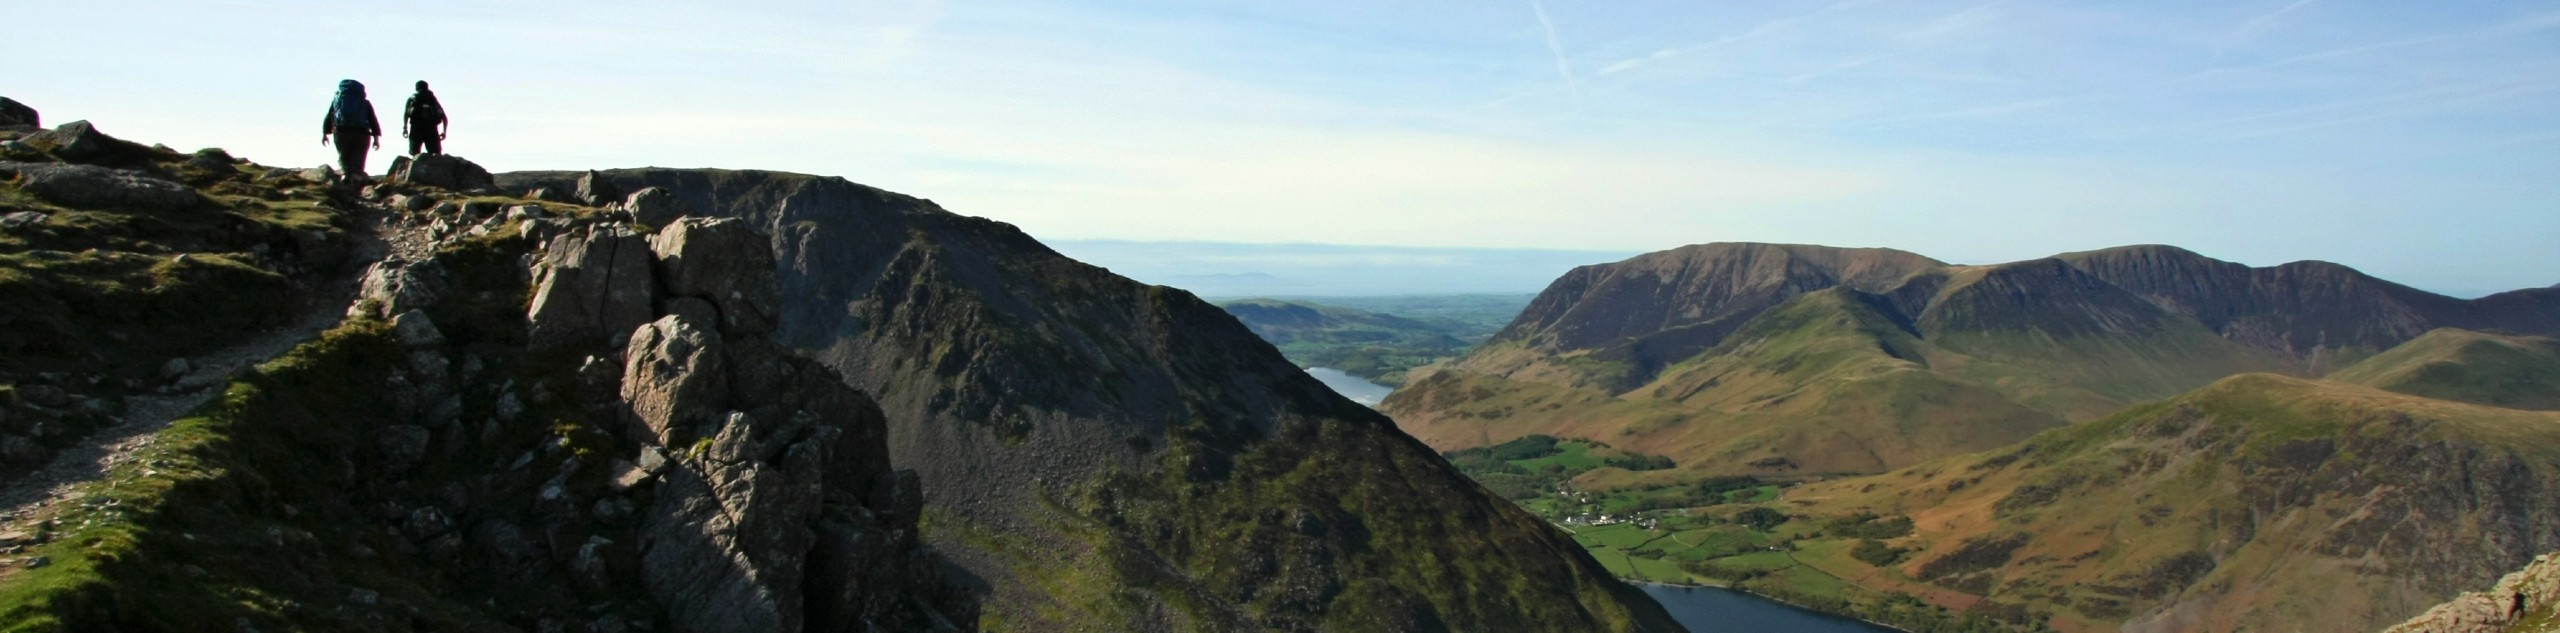 Red Pike from Ennerdale Water